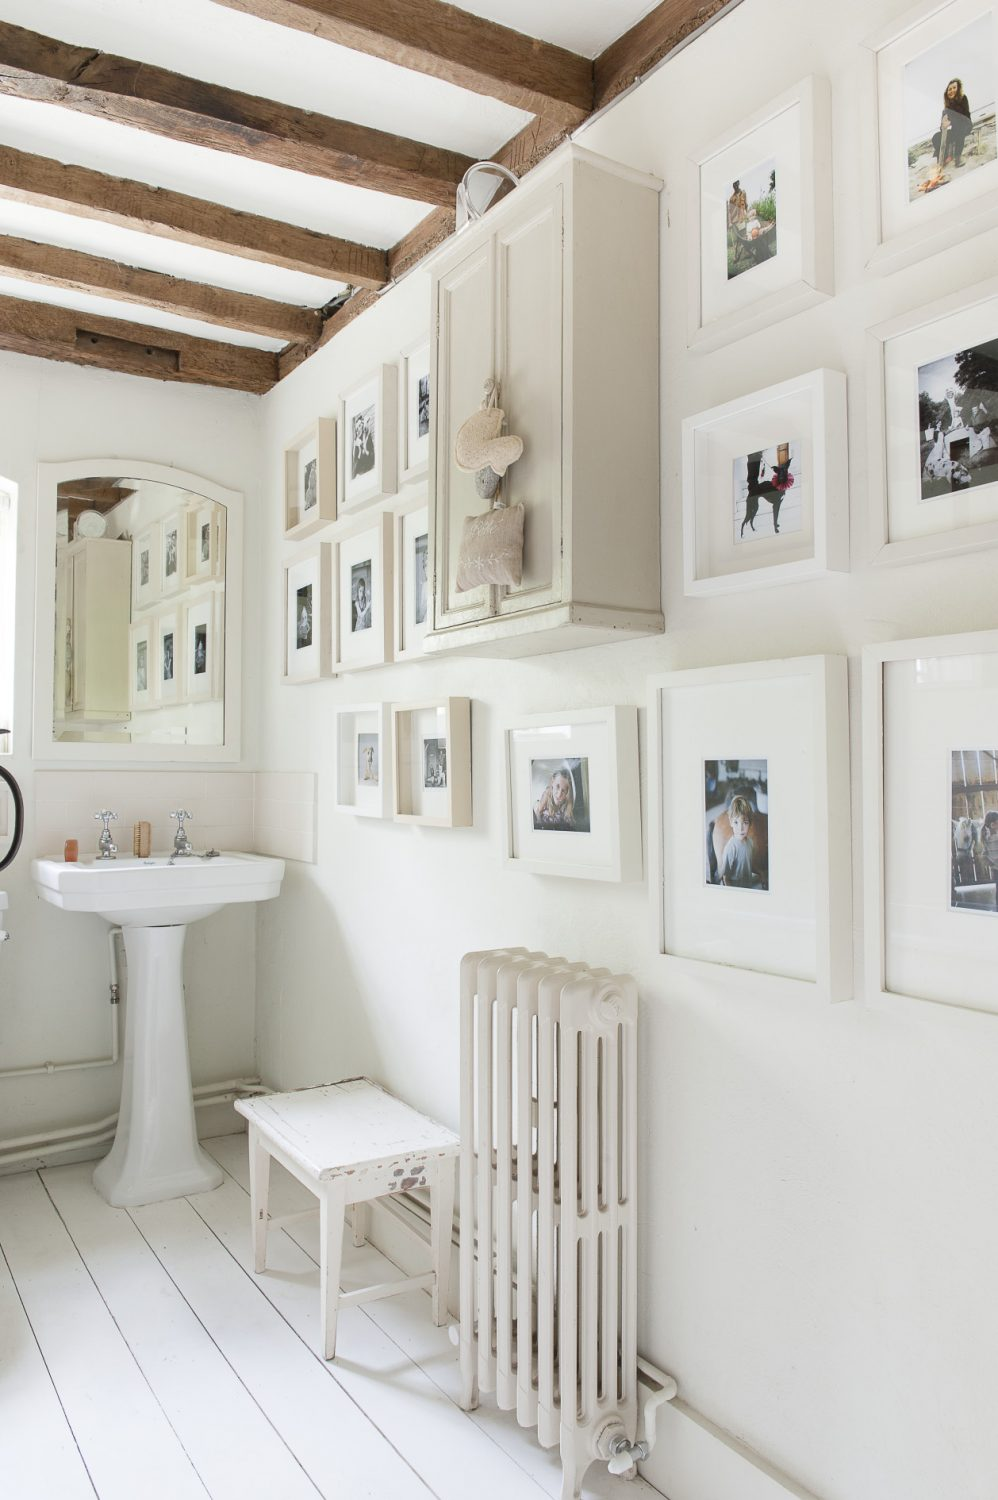 Family photographs cover the walls of the pure white bathroom